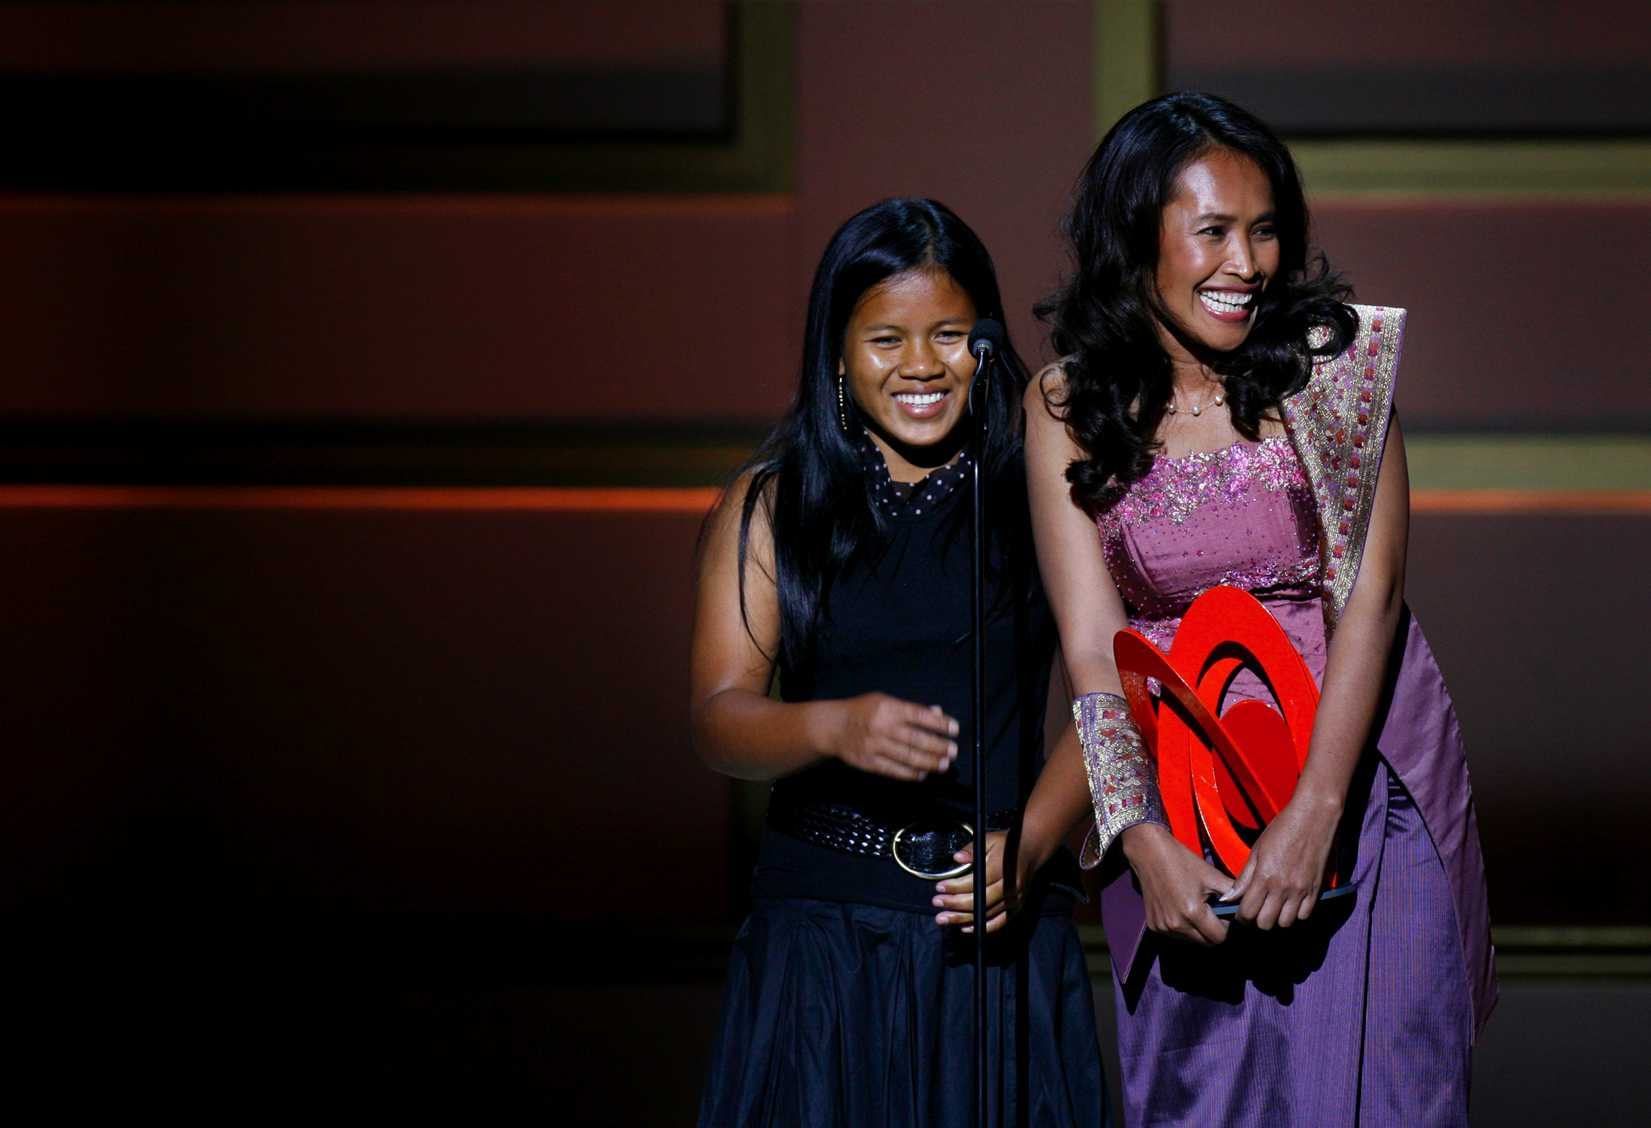 Cambodian activist Somaly Mam (R) accepts a  Woman of the Year  award with a child she rescued from sexual slavery, during the 2006 Glamour Magazine  Women of the Year  Honors award show in New York City October 30, 2006.